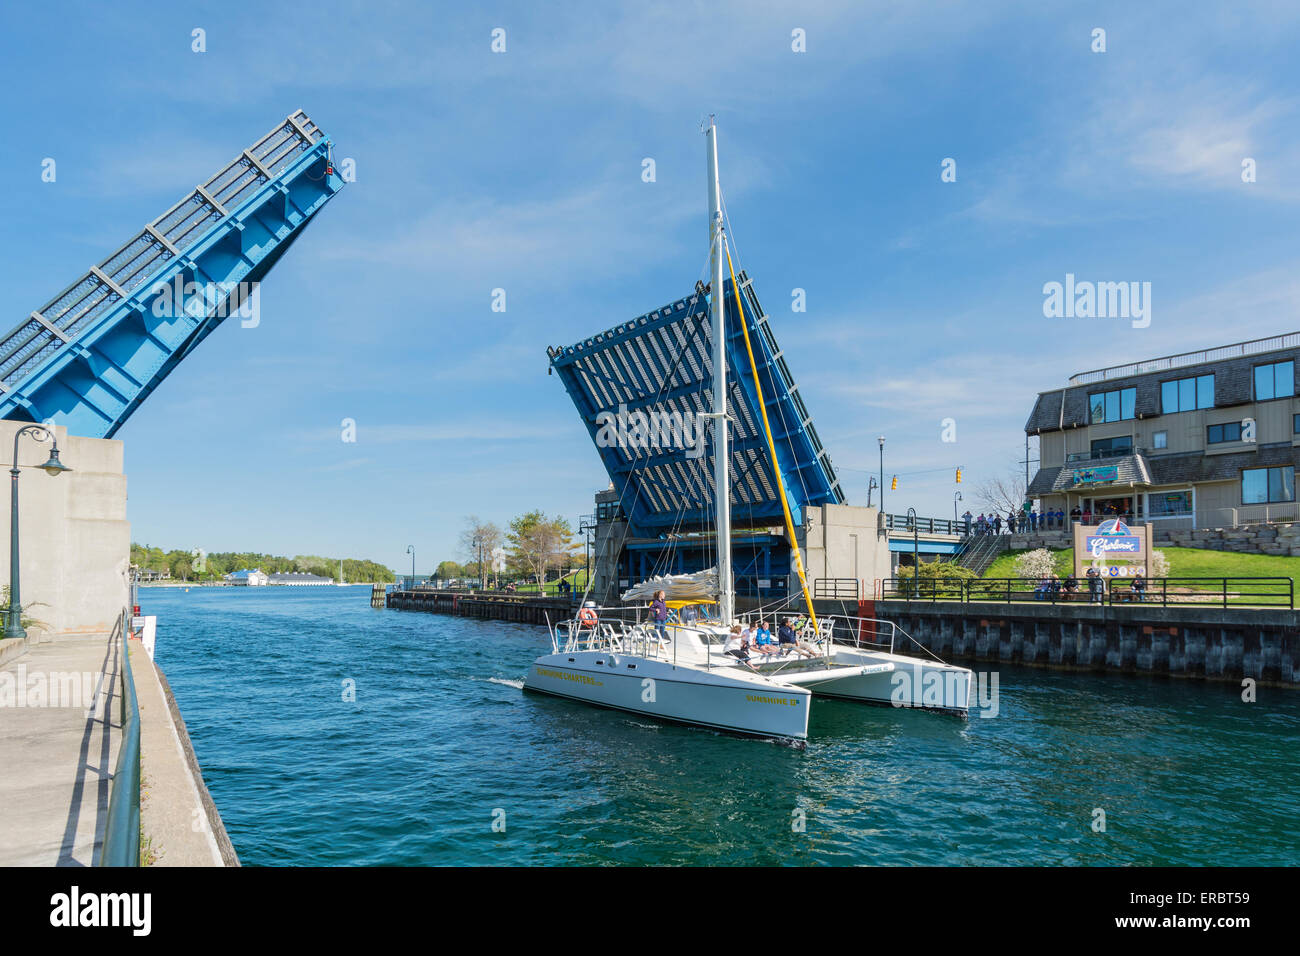 Michigan, Charlevoix, Pine River Channel, charter catamaran sailboat heads out to Lake Michigan, Bascule type drawbridge - Stock Image